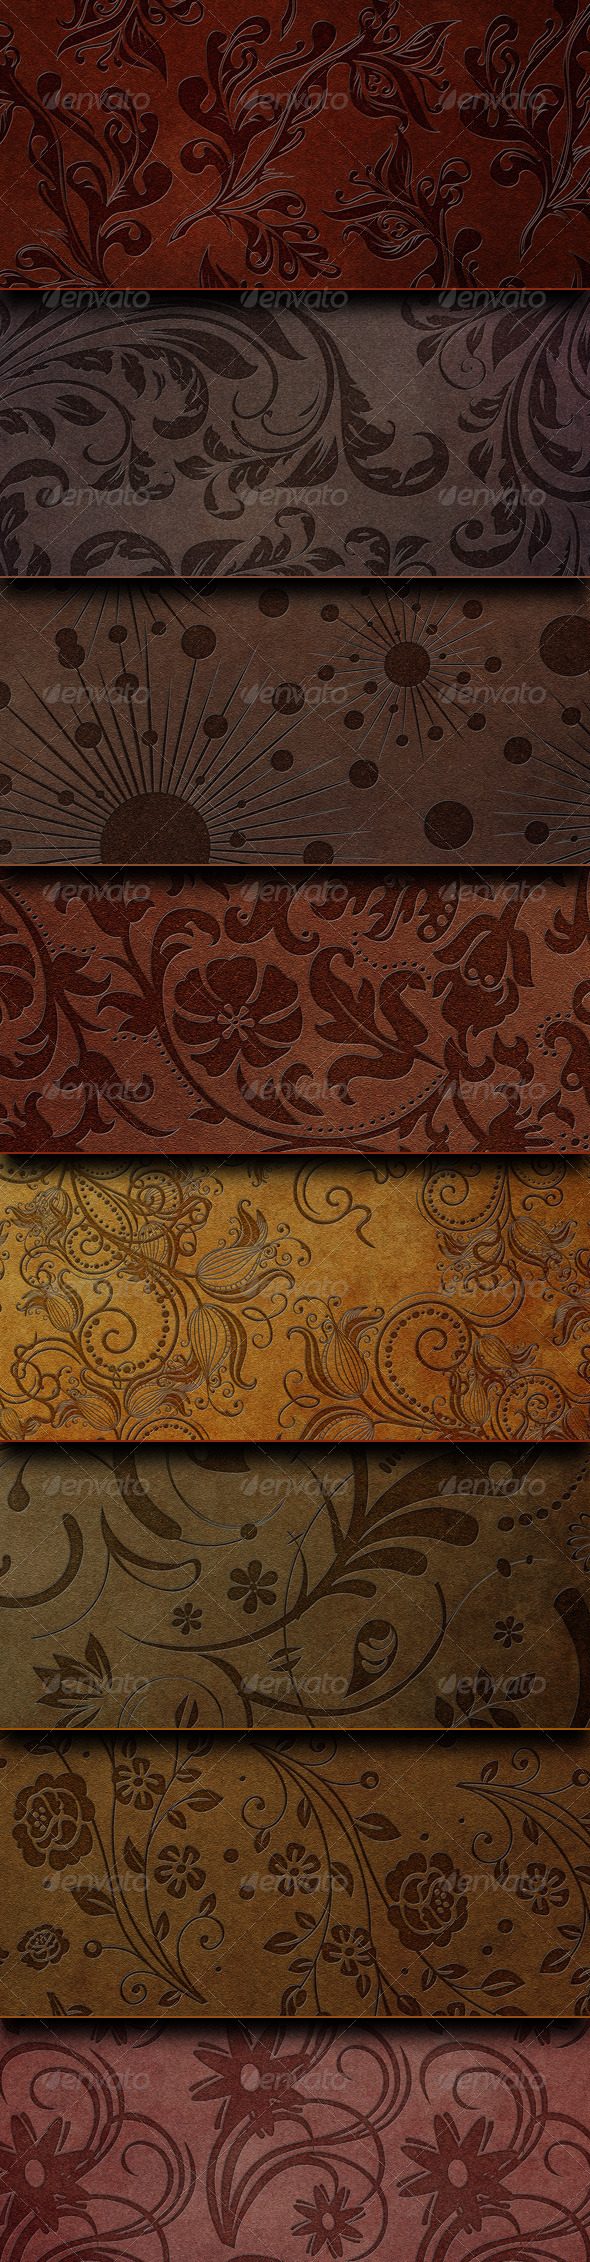 Grunge Background - Backgrounds Graphics